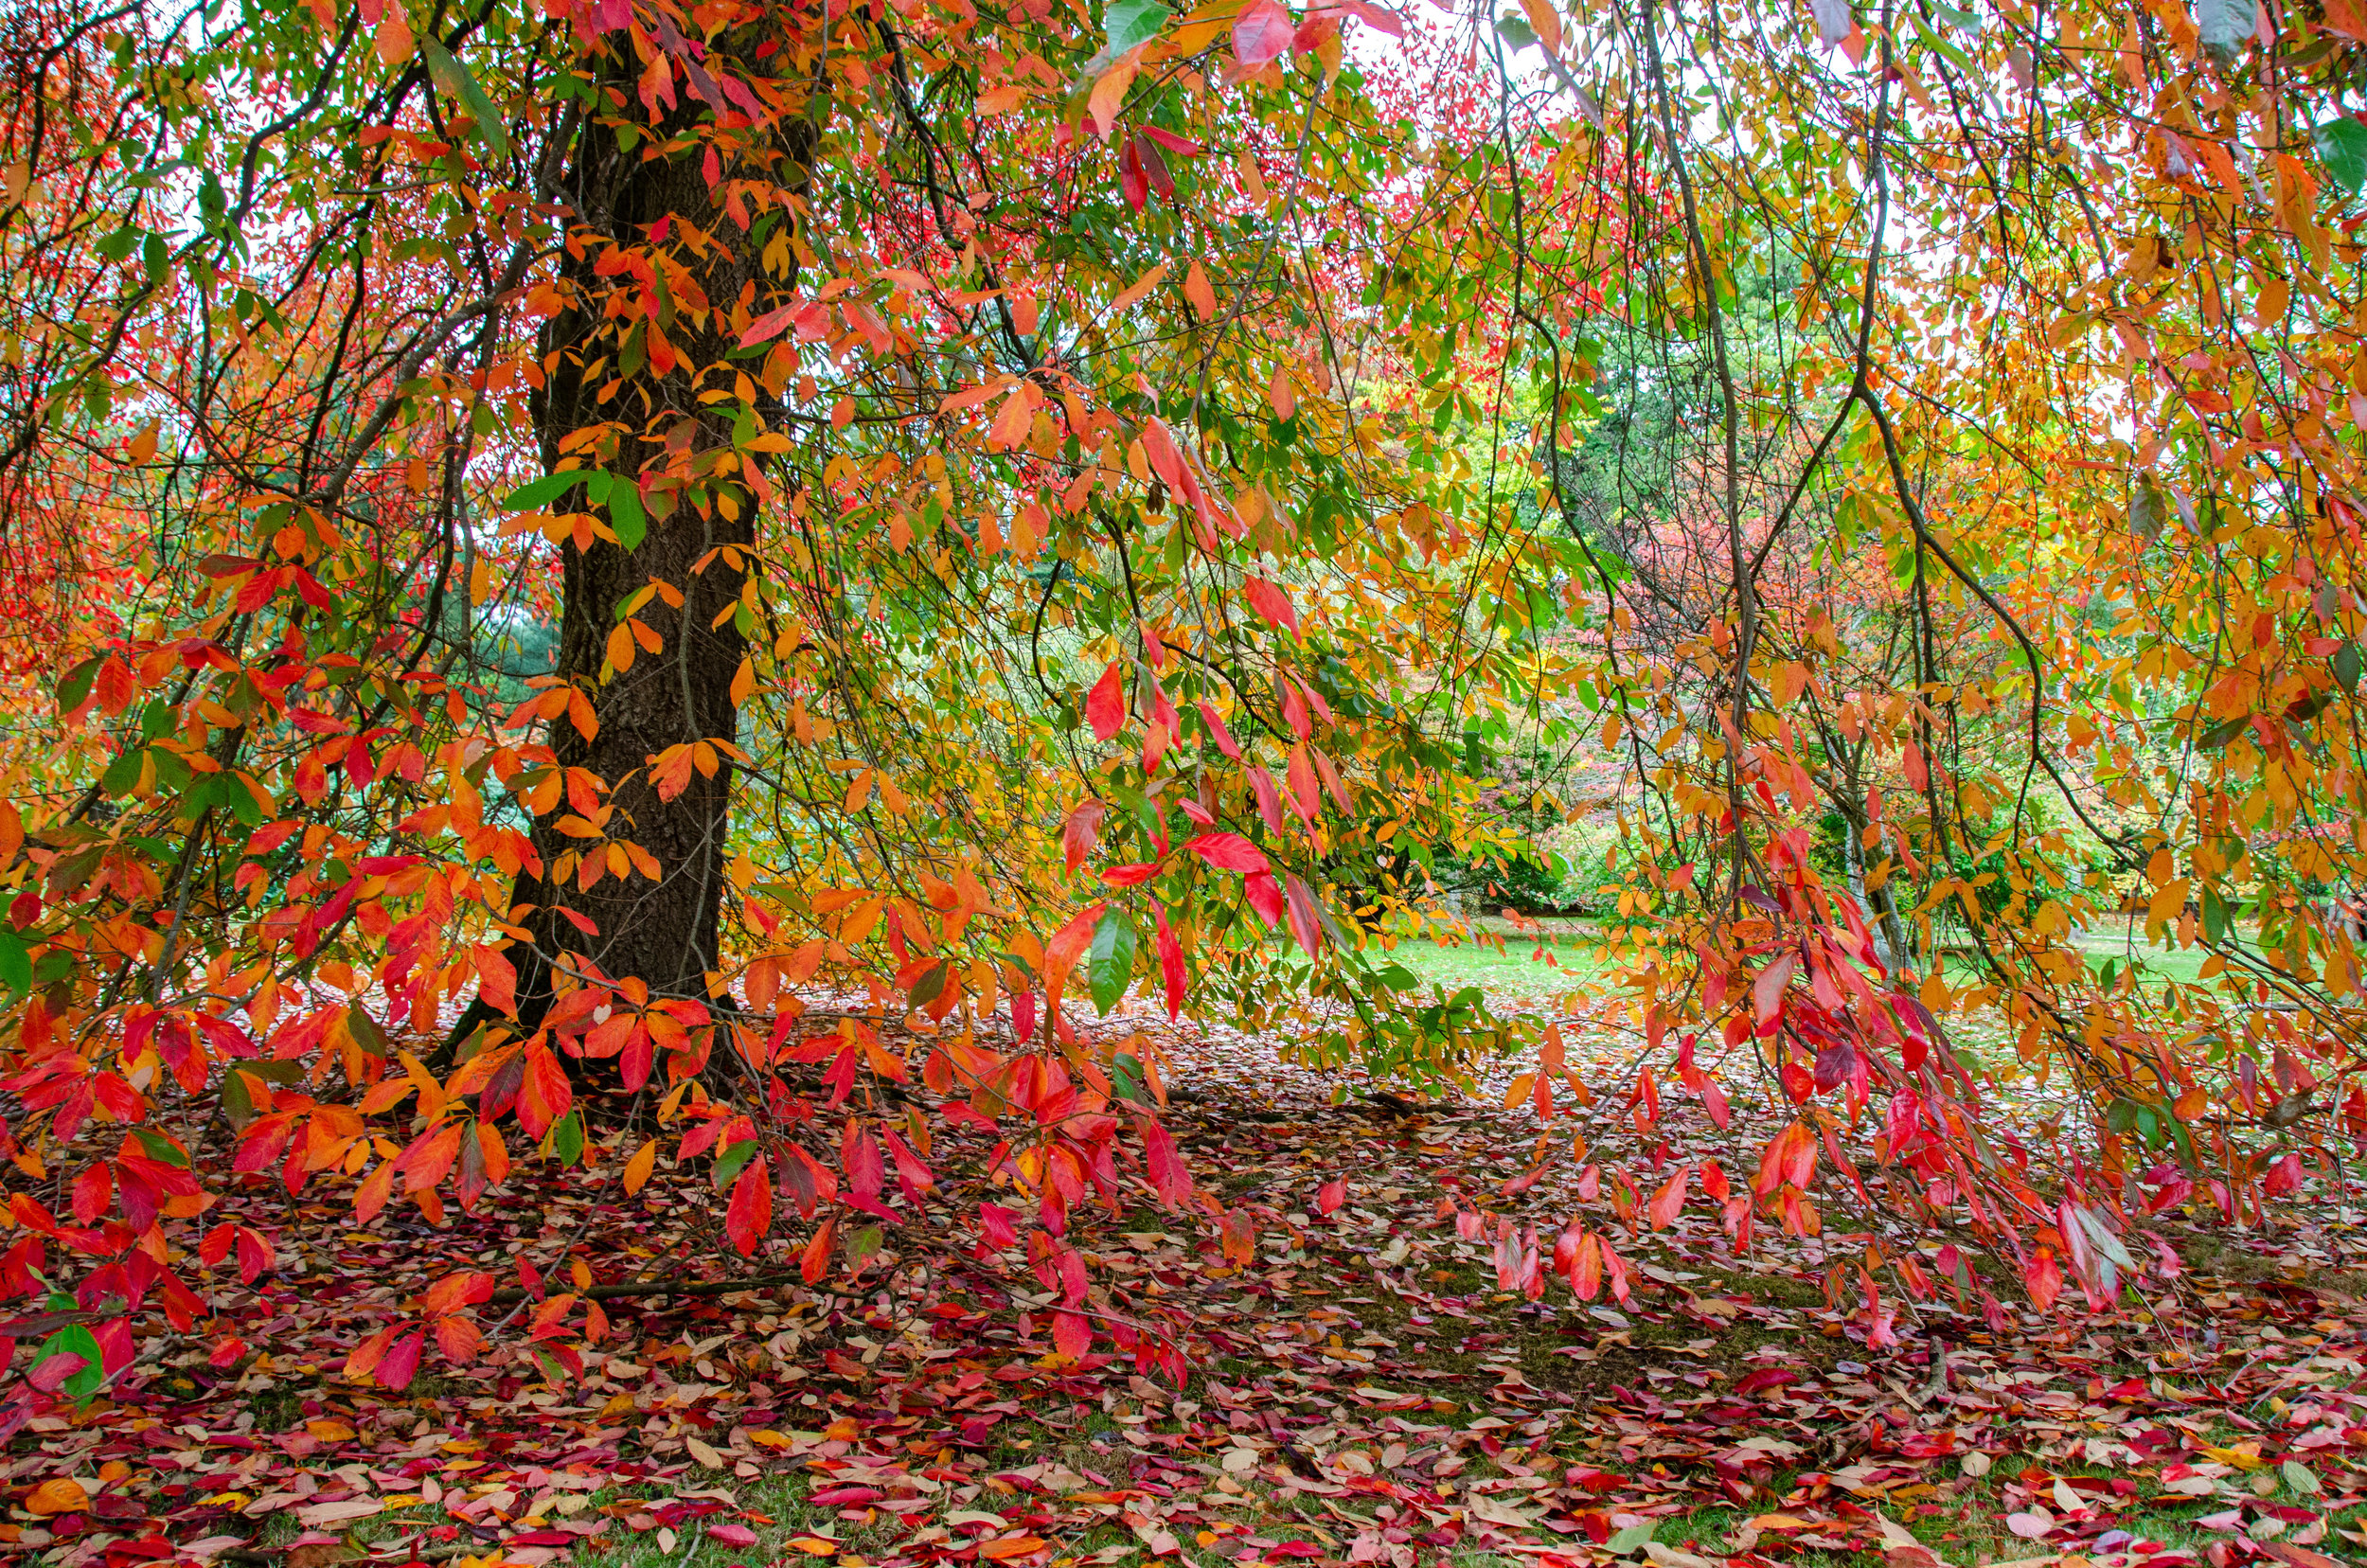 Trees flaming in a riot of colour..